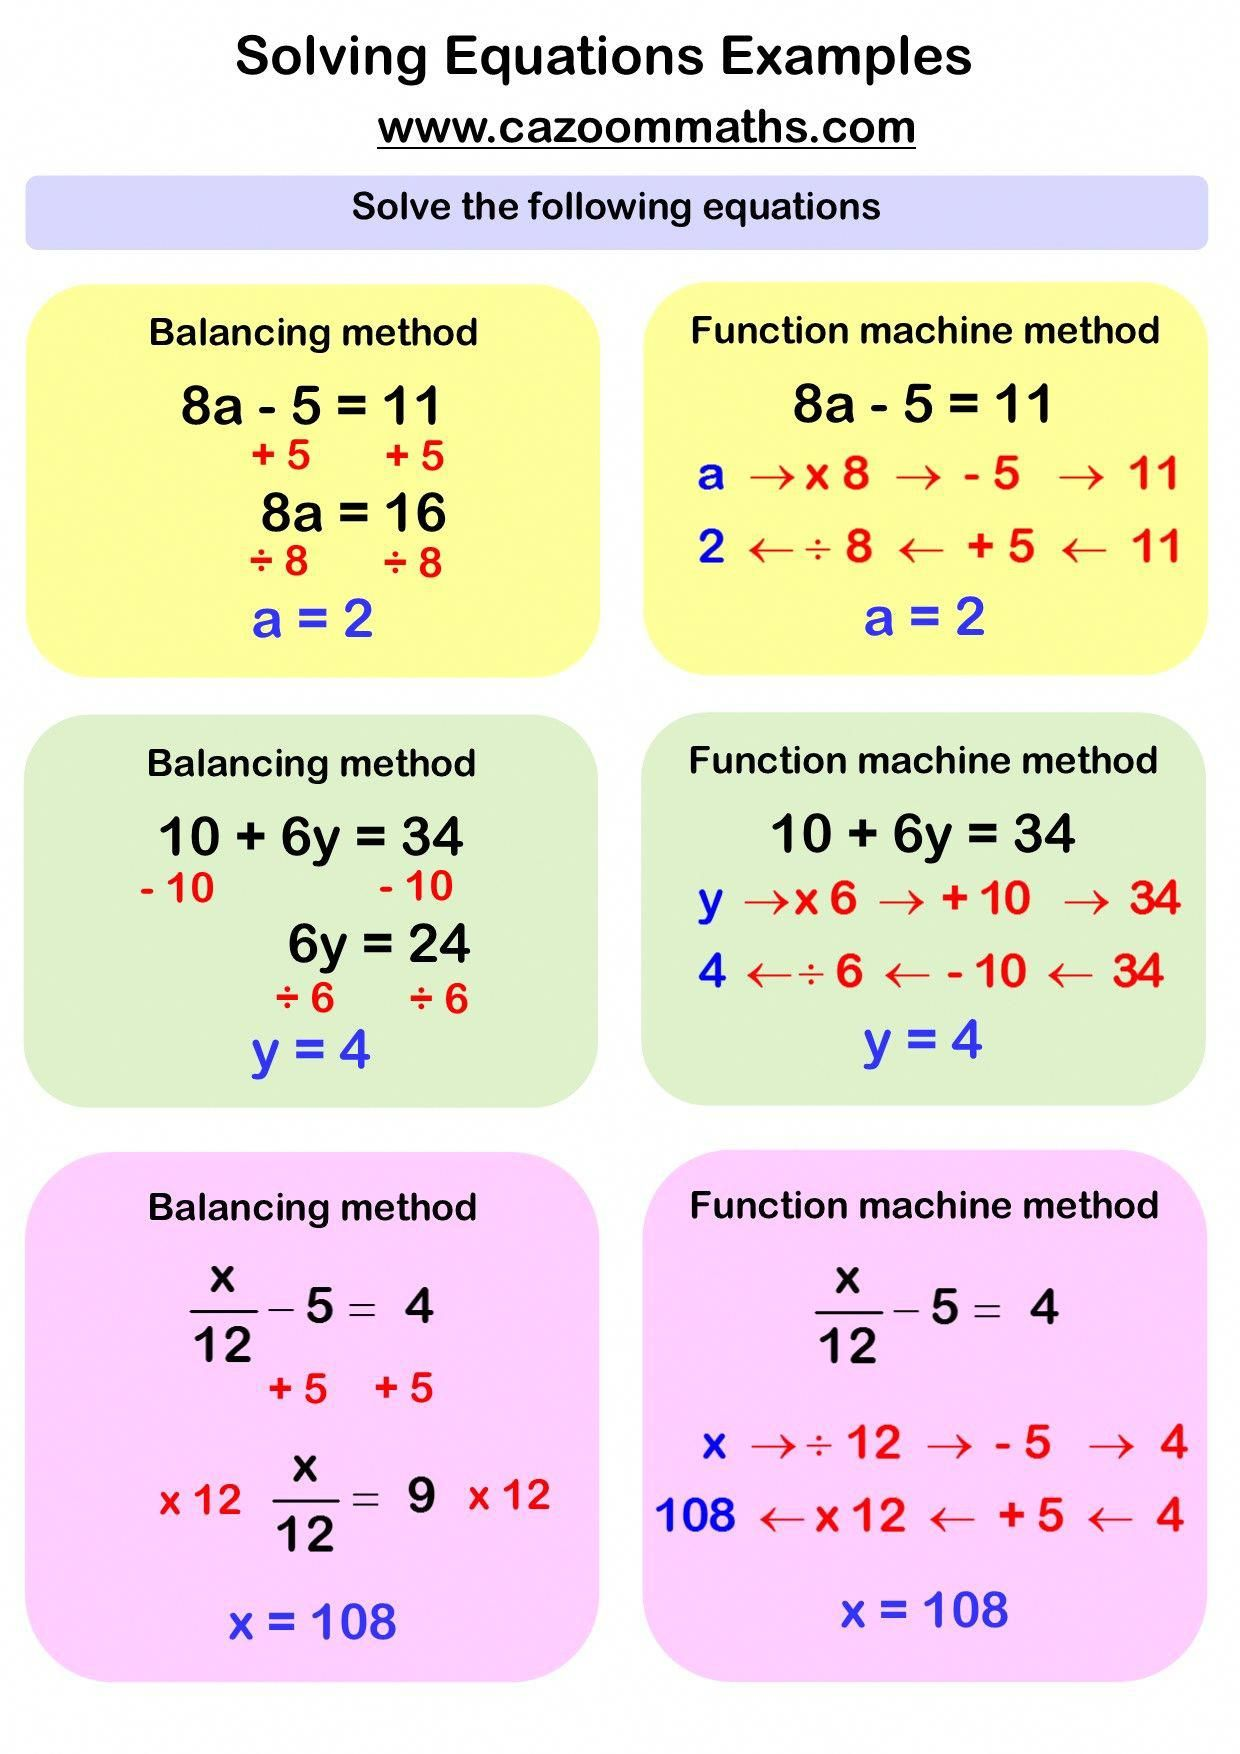 Solving Linear Equations Example Learnmathematics Algebra Worksheets Studying Math Solving Linear Equations [ 1754 x 1240 Pixel ]